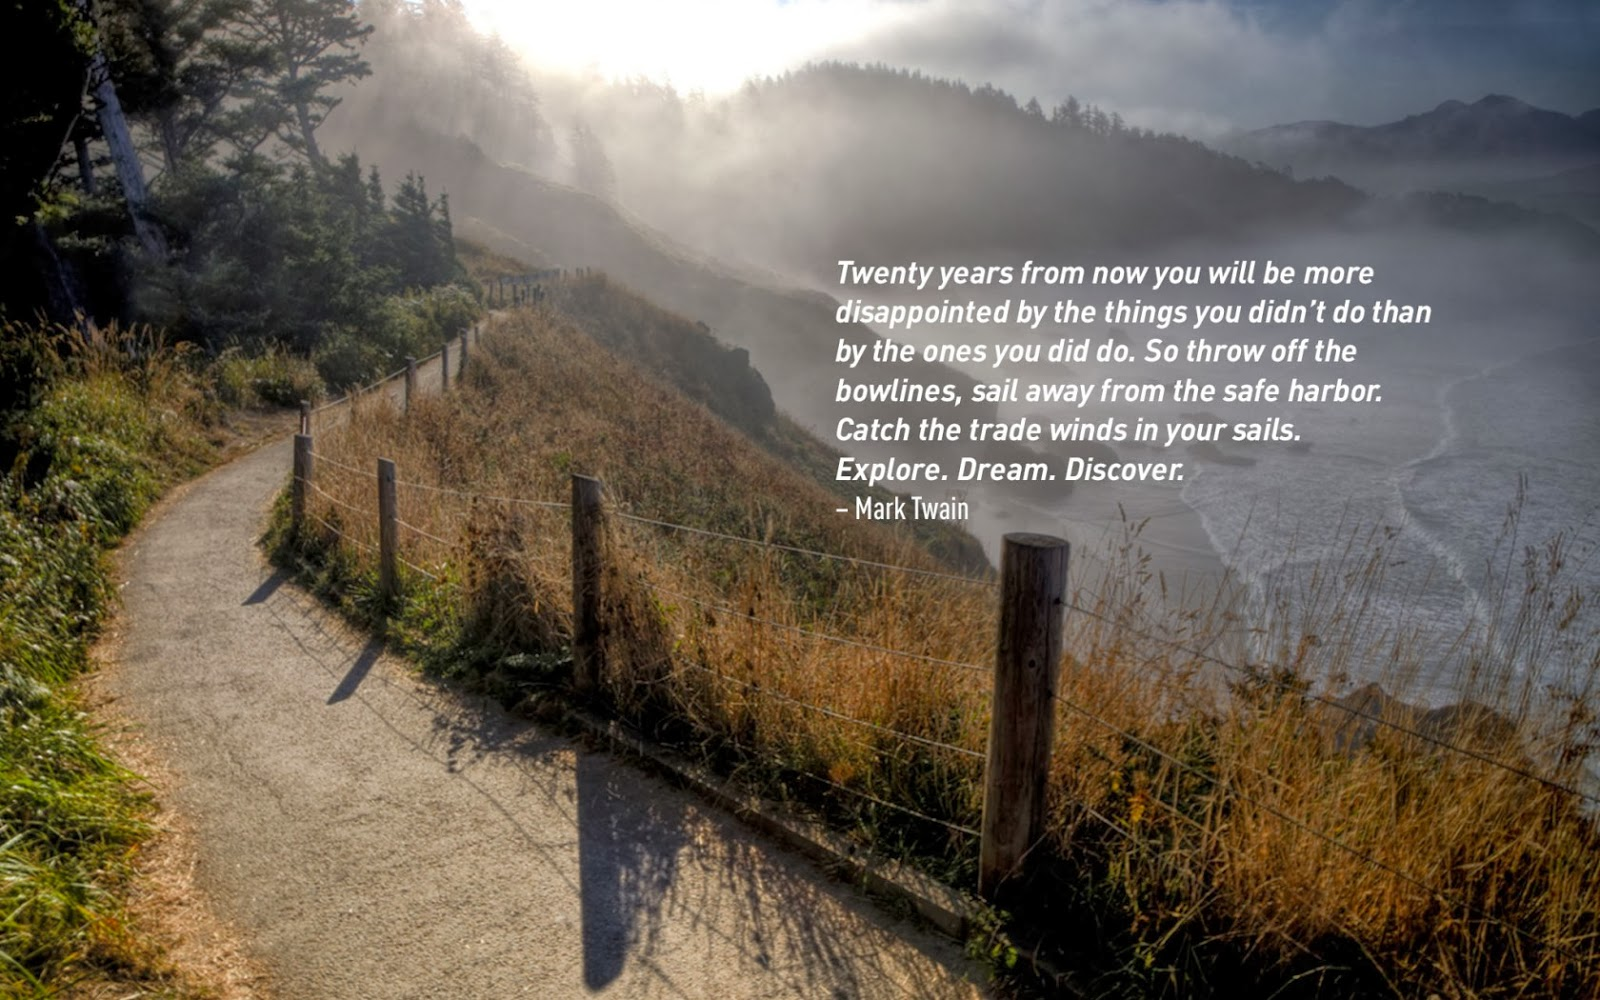 Mark twain quotes about travel quotesgram - Famous Quotes About Travel Quotesgram